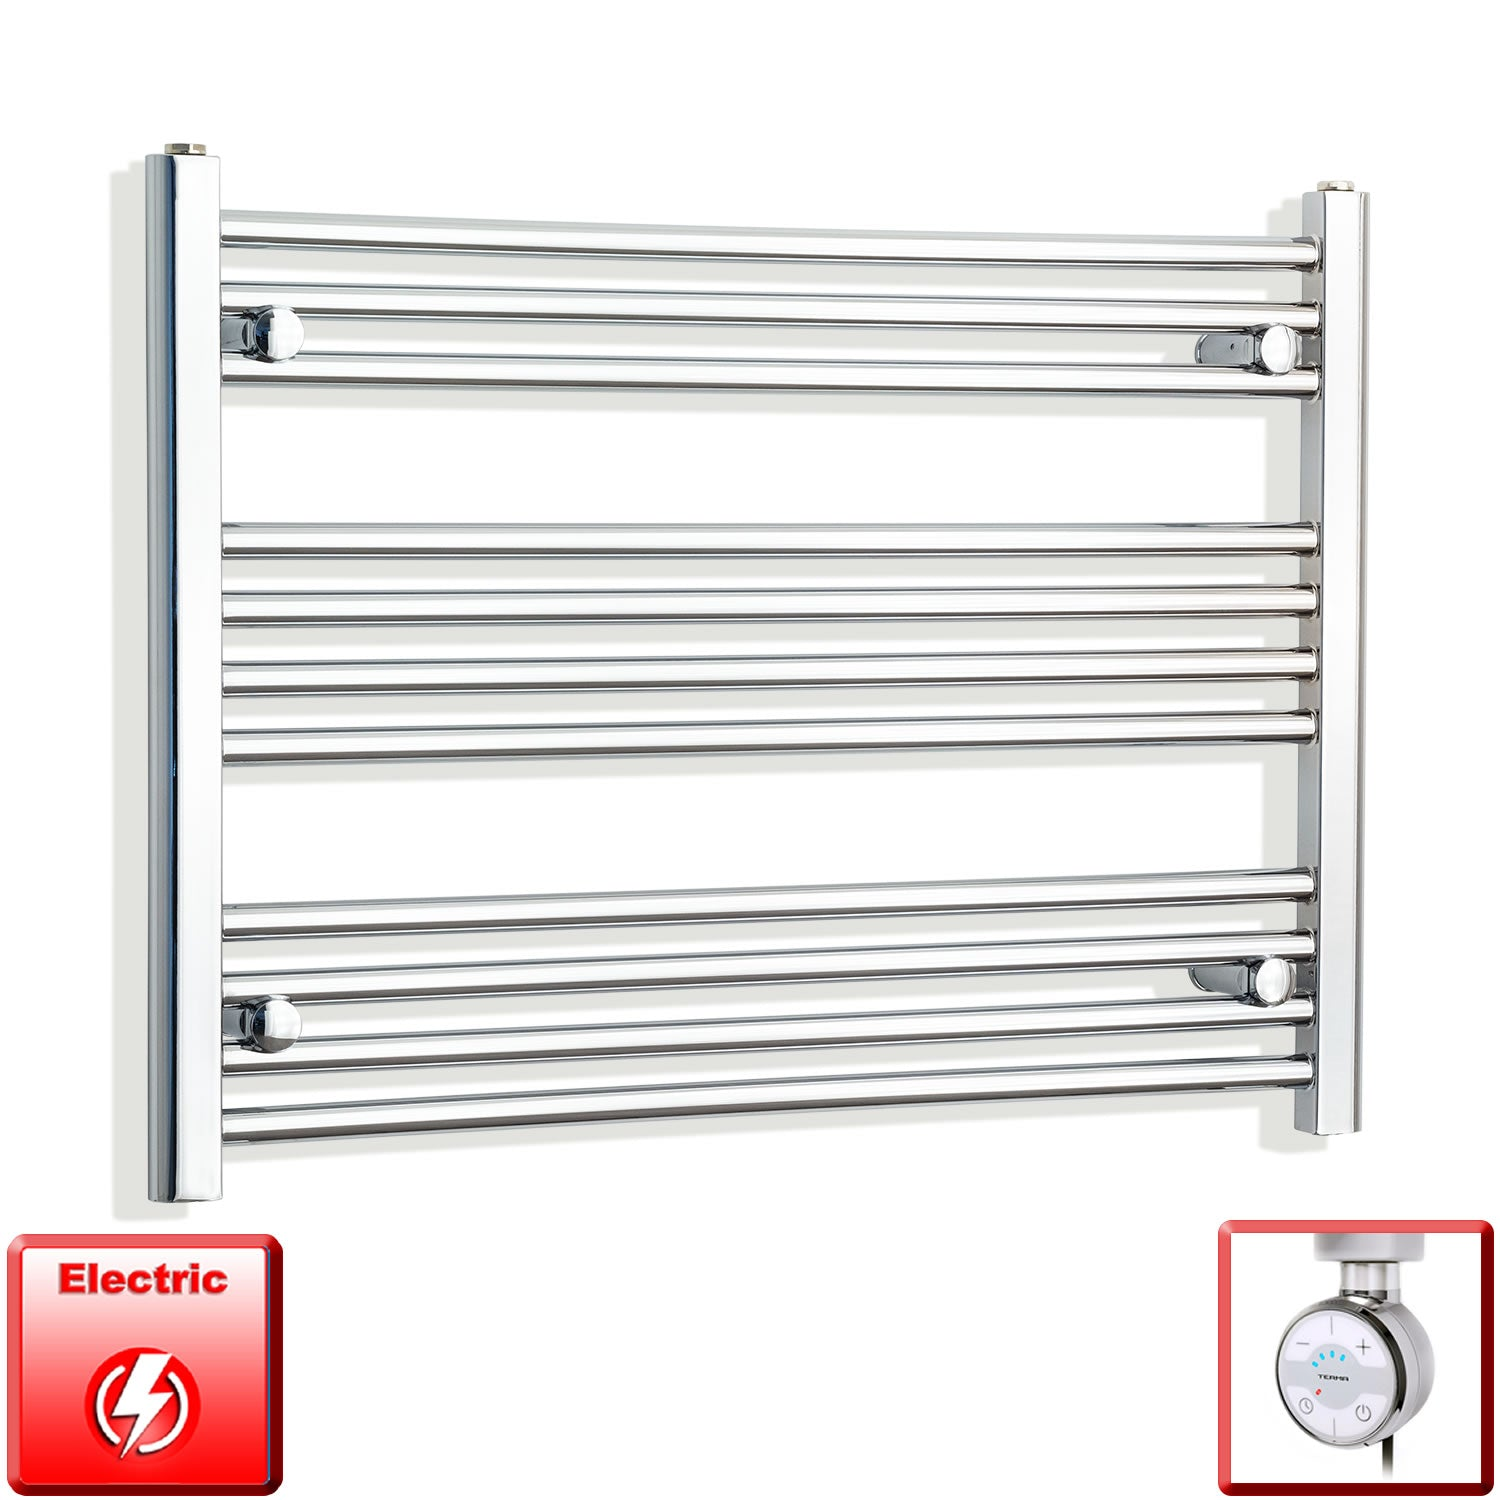 850mm Wide 600mm High Pre-Filled Chrome Electric Towel Rail Radiator With Thermostatic MOA Element